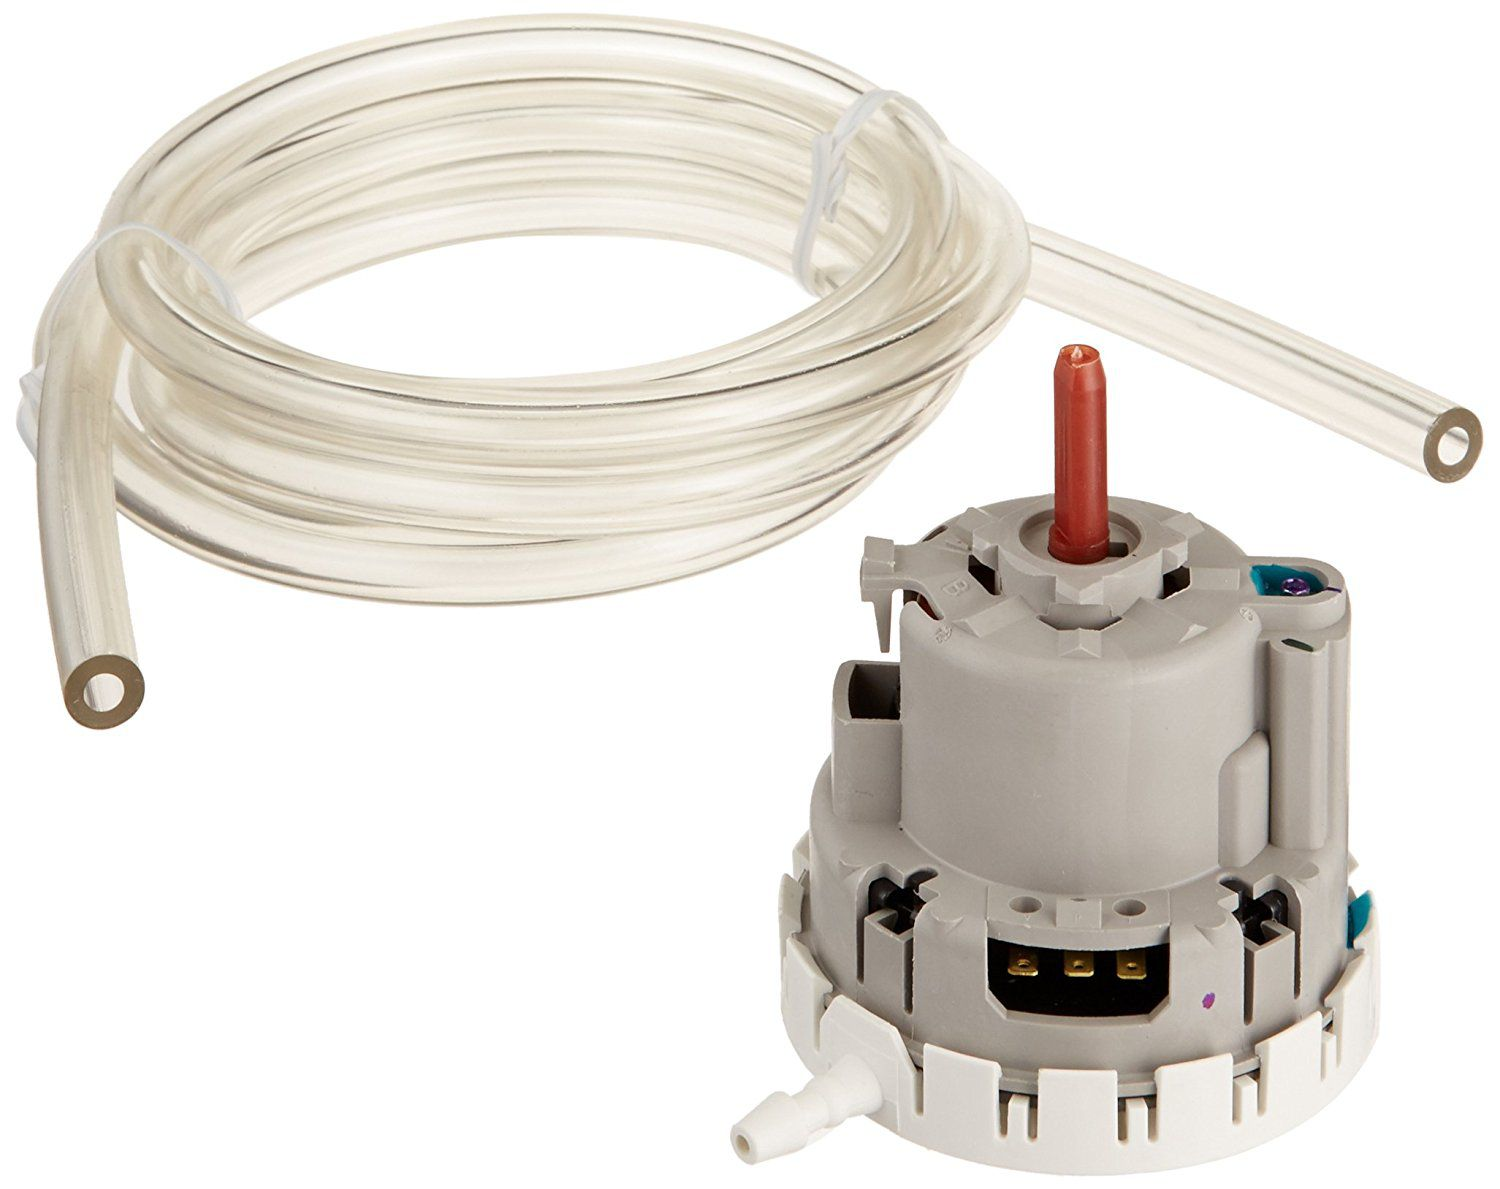 How To Test A Washing Machine Water Level Switch